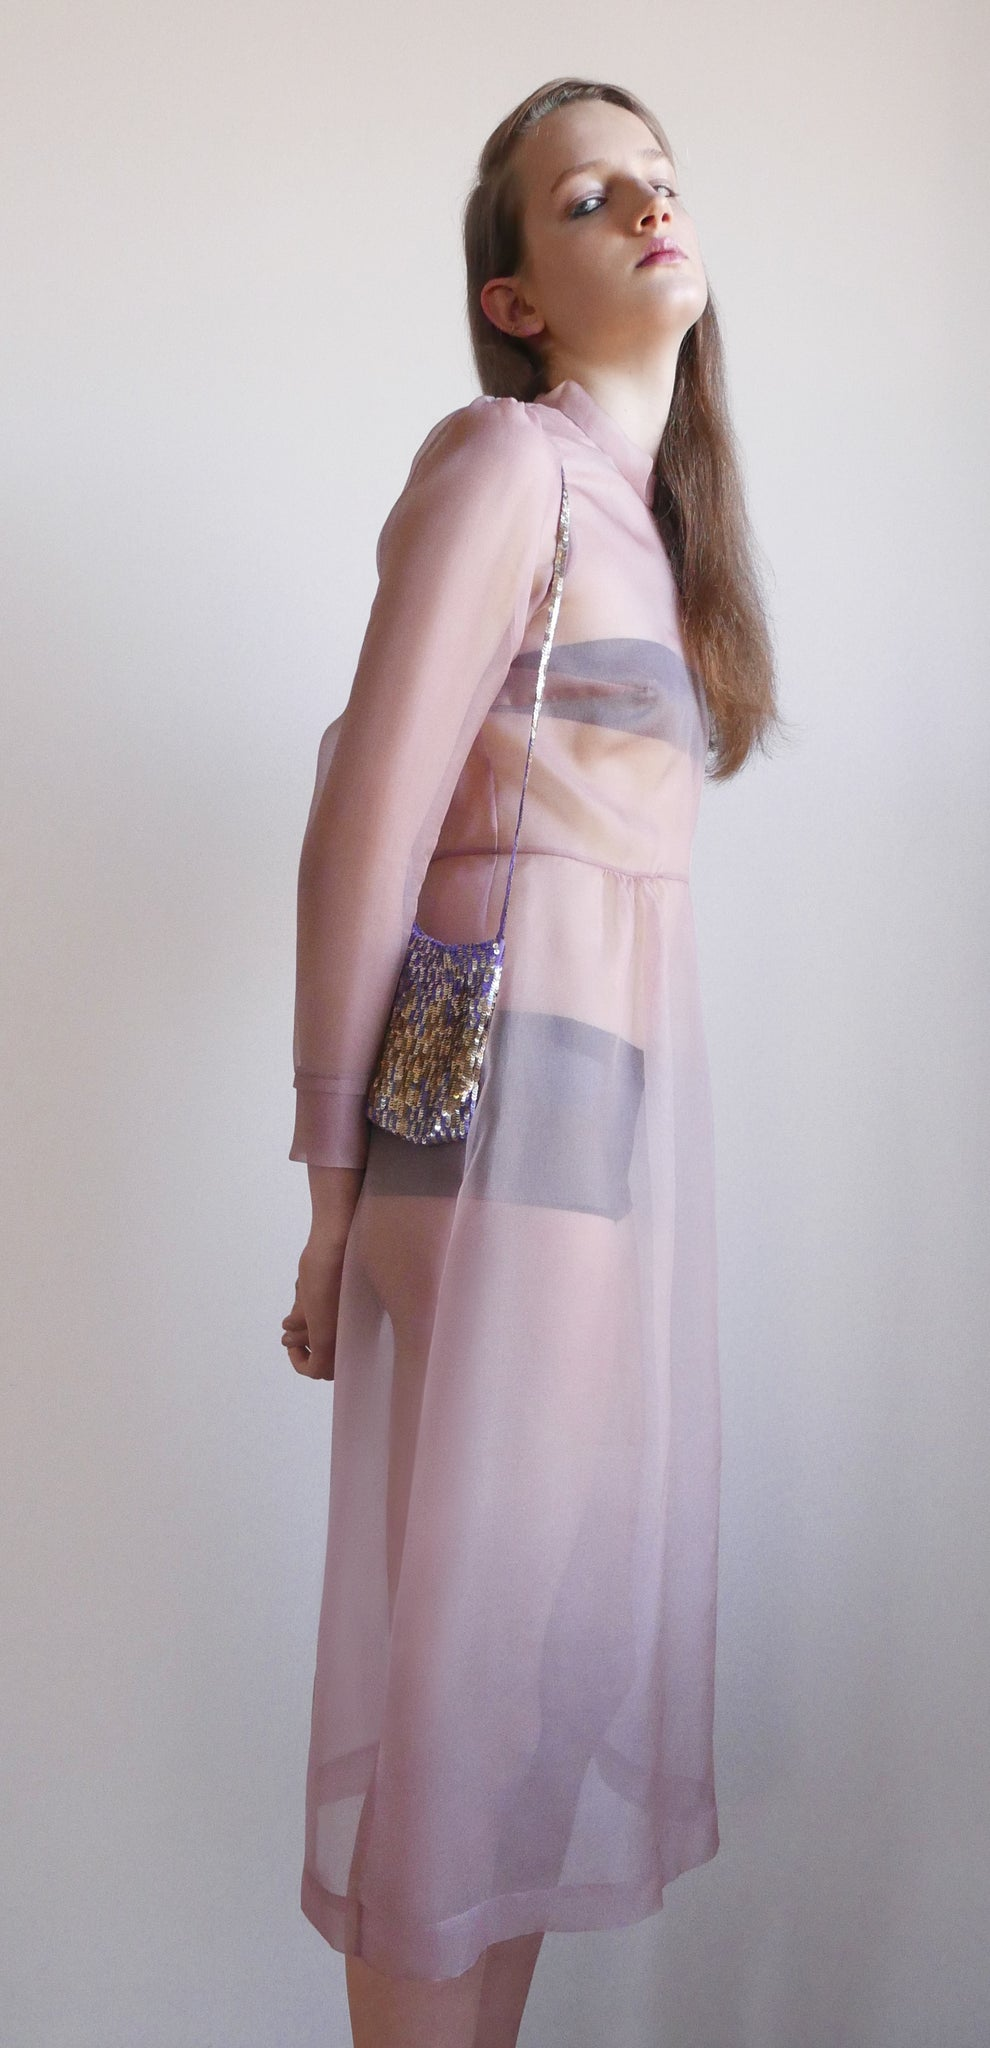 Pale Organza dress